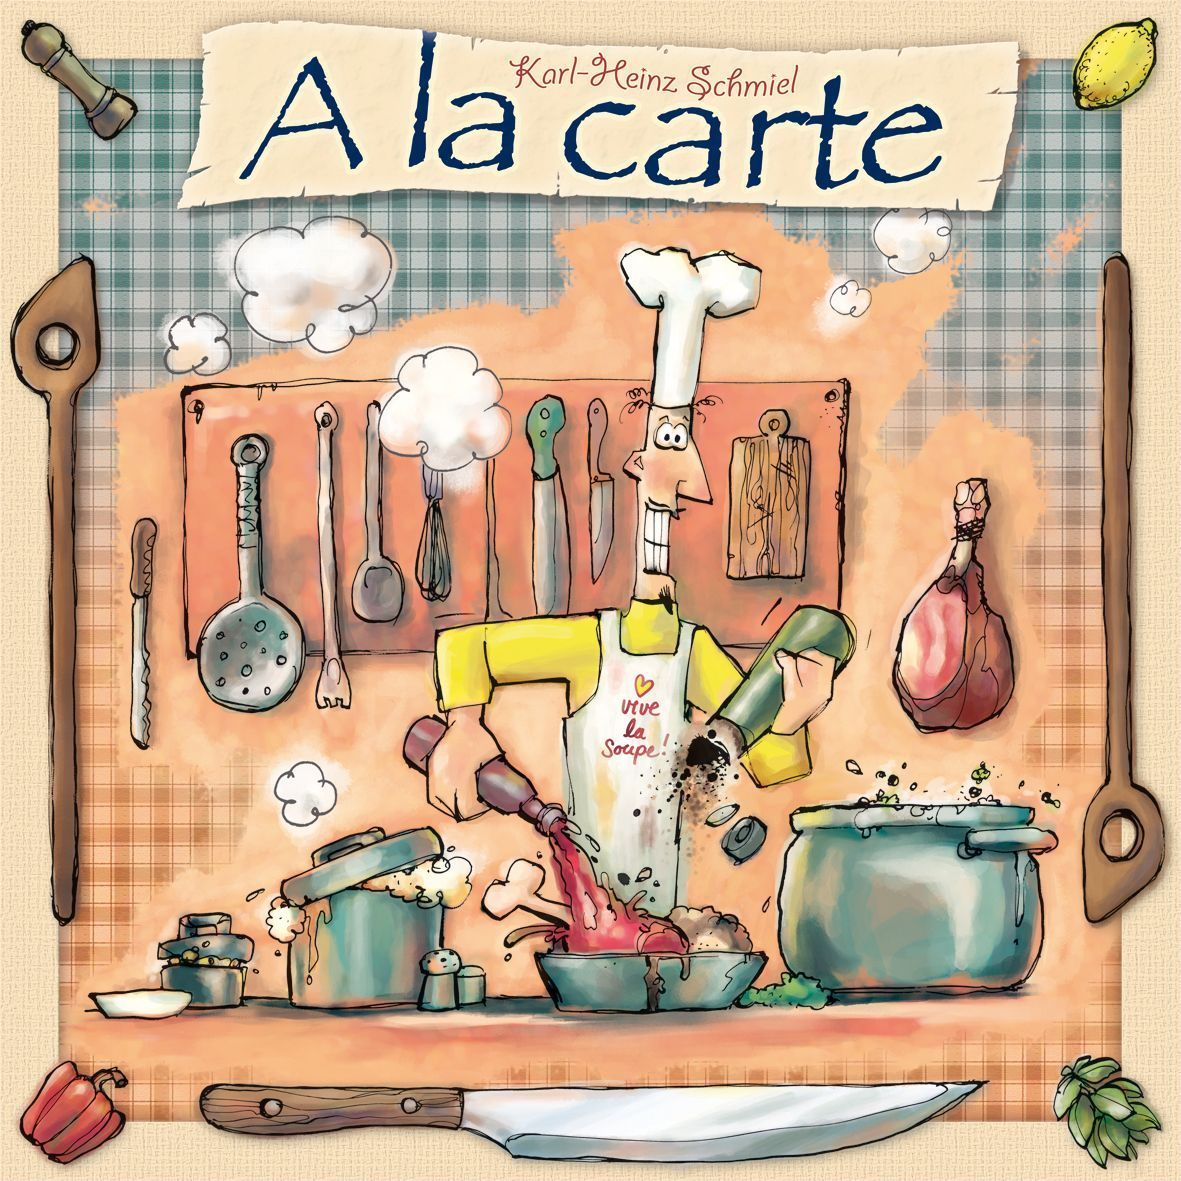 Main image for A la carte board game